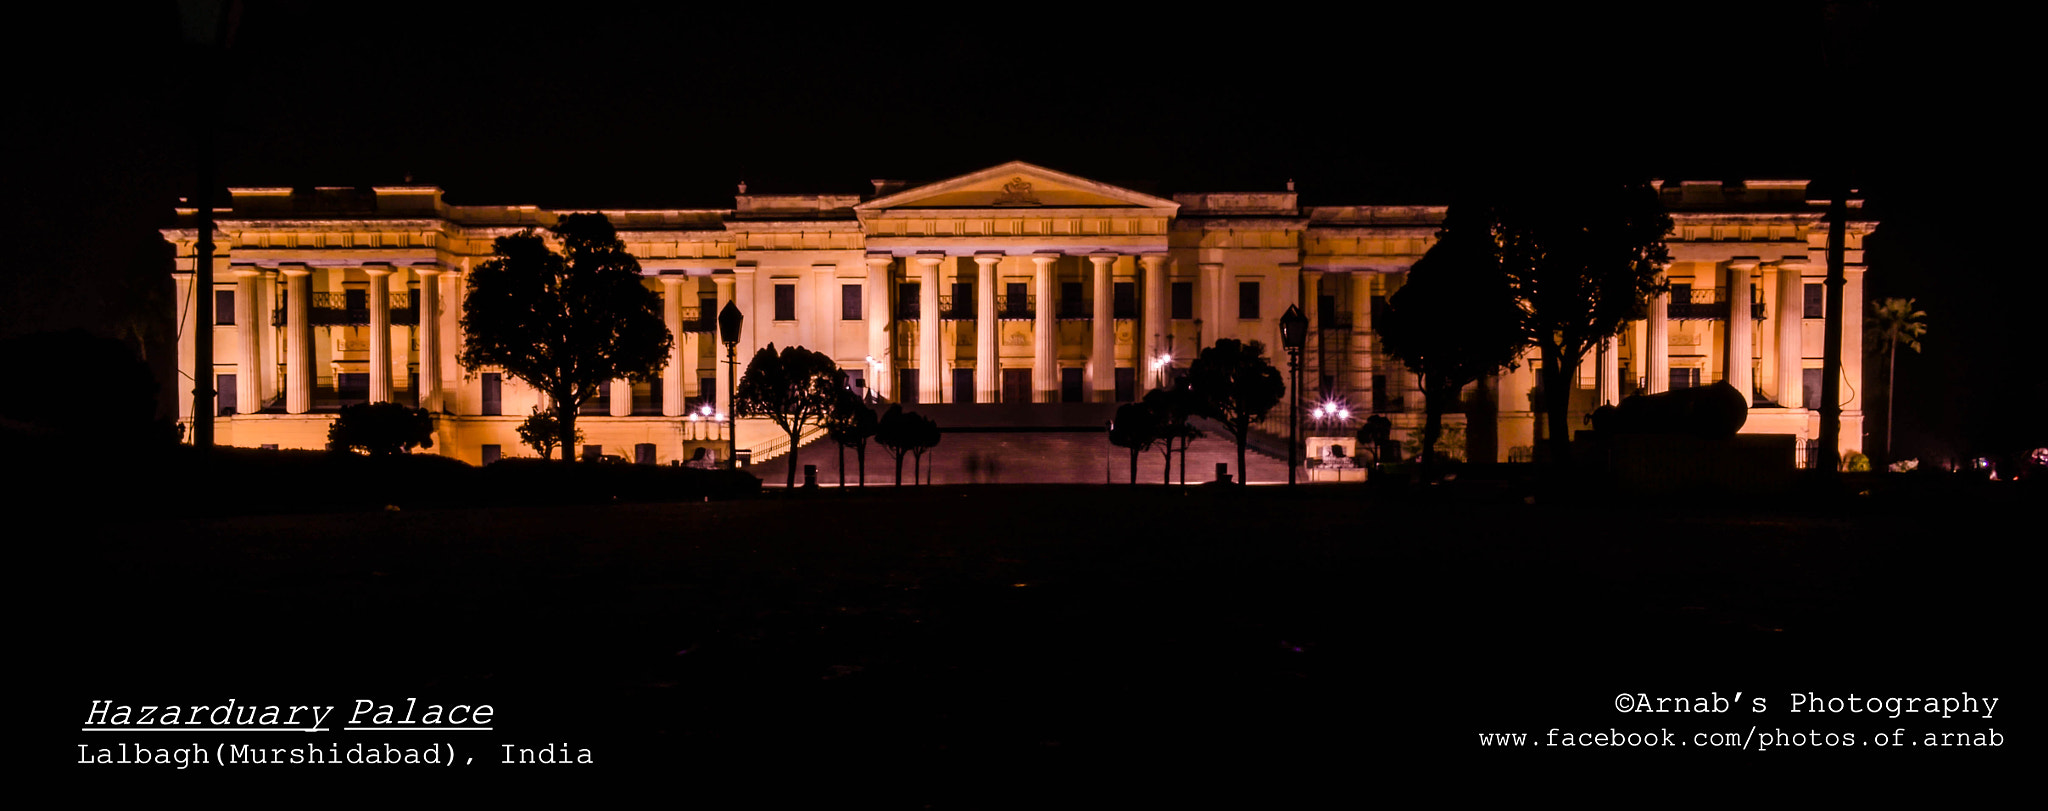 Photograph Hazarduary Palace by Arnab Ghosh on 500px